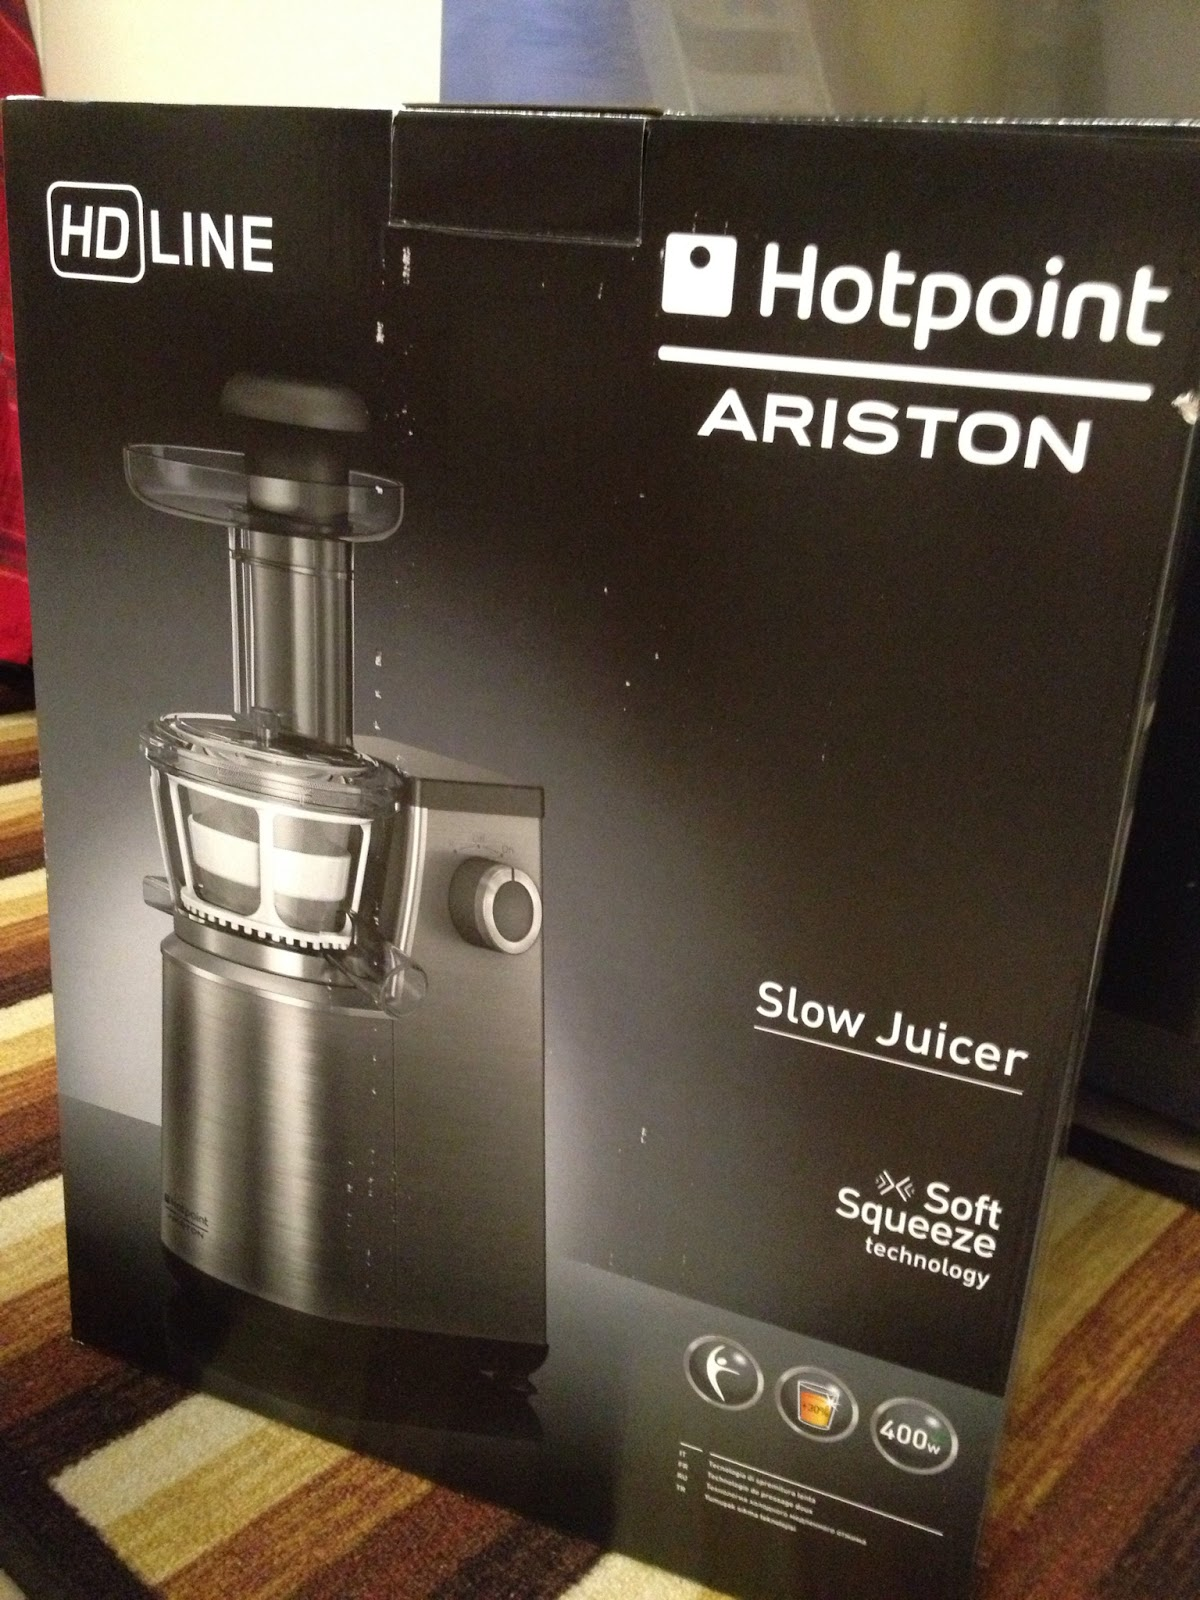 Hotpoint Slow Juicer Review : ???????: ????Hotpoint ariston Slow juicer